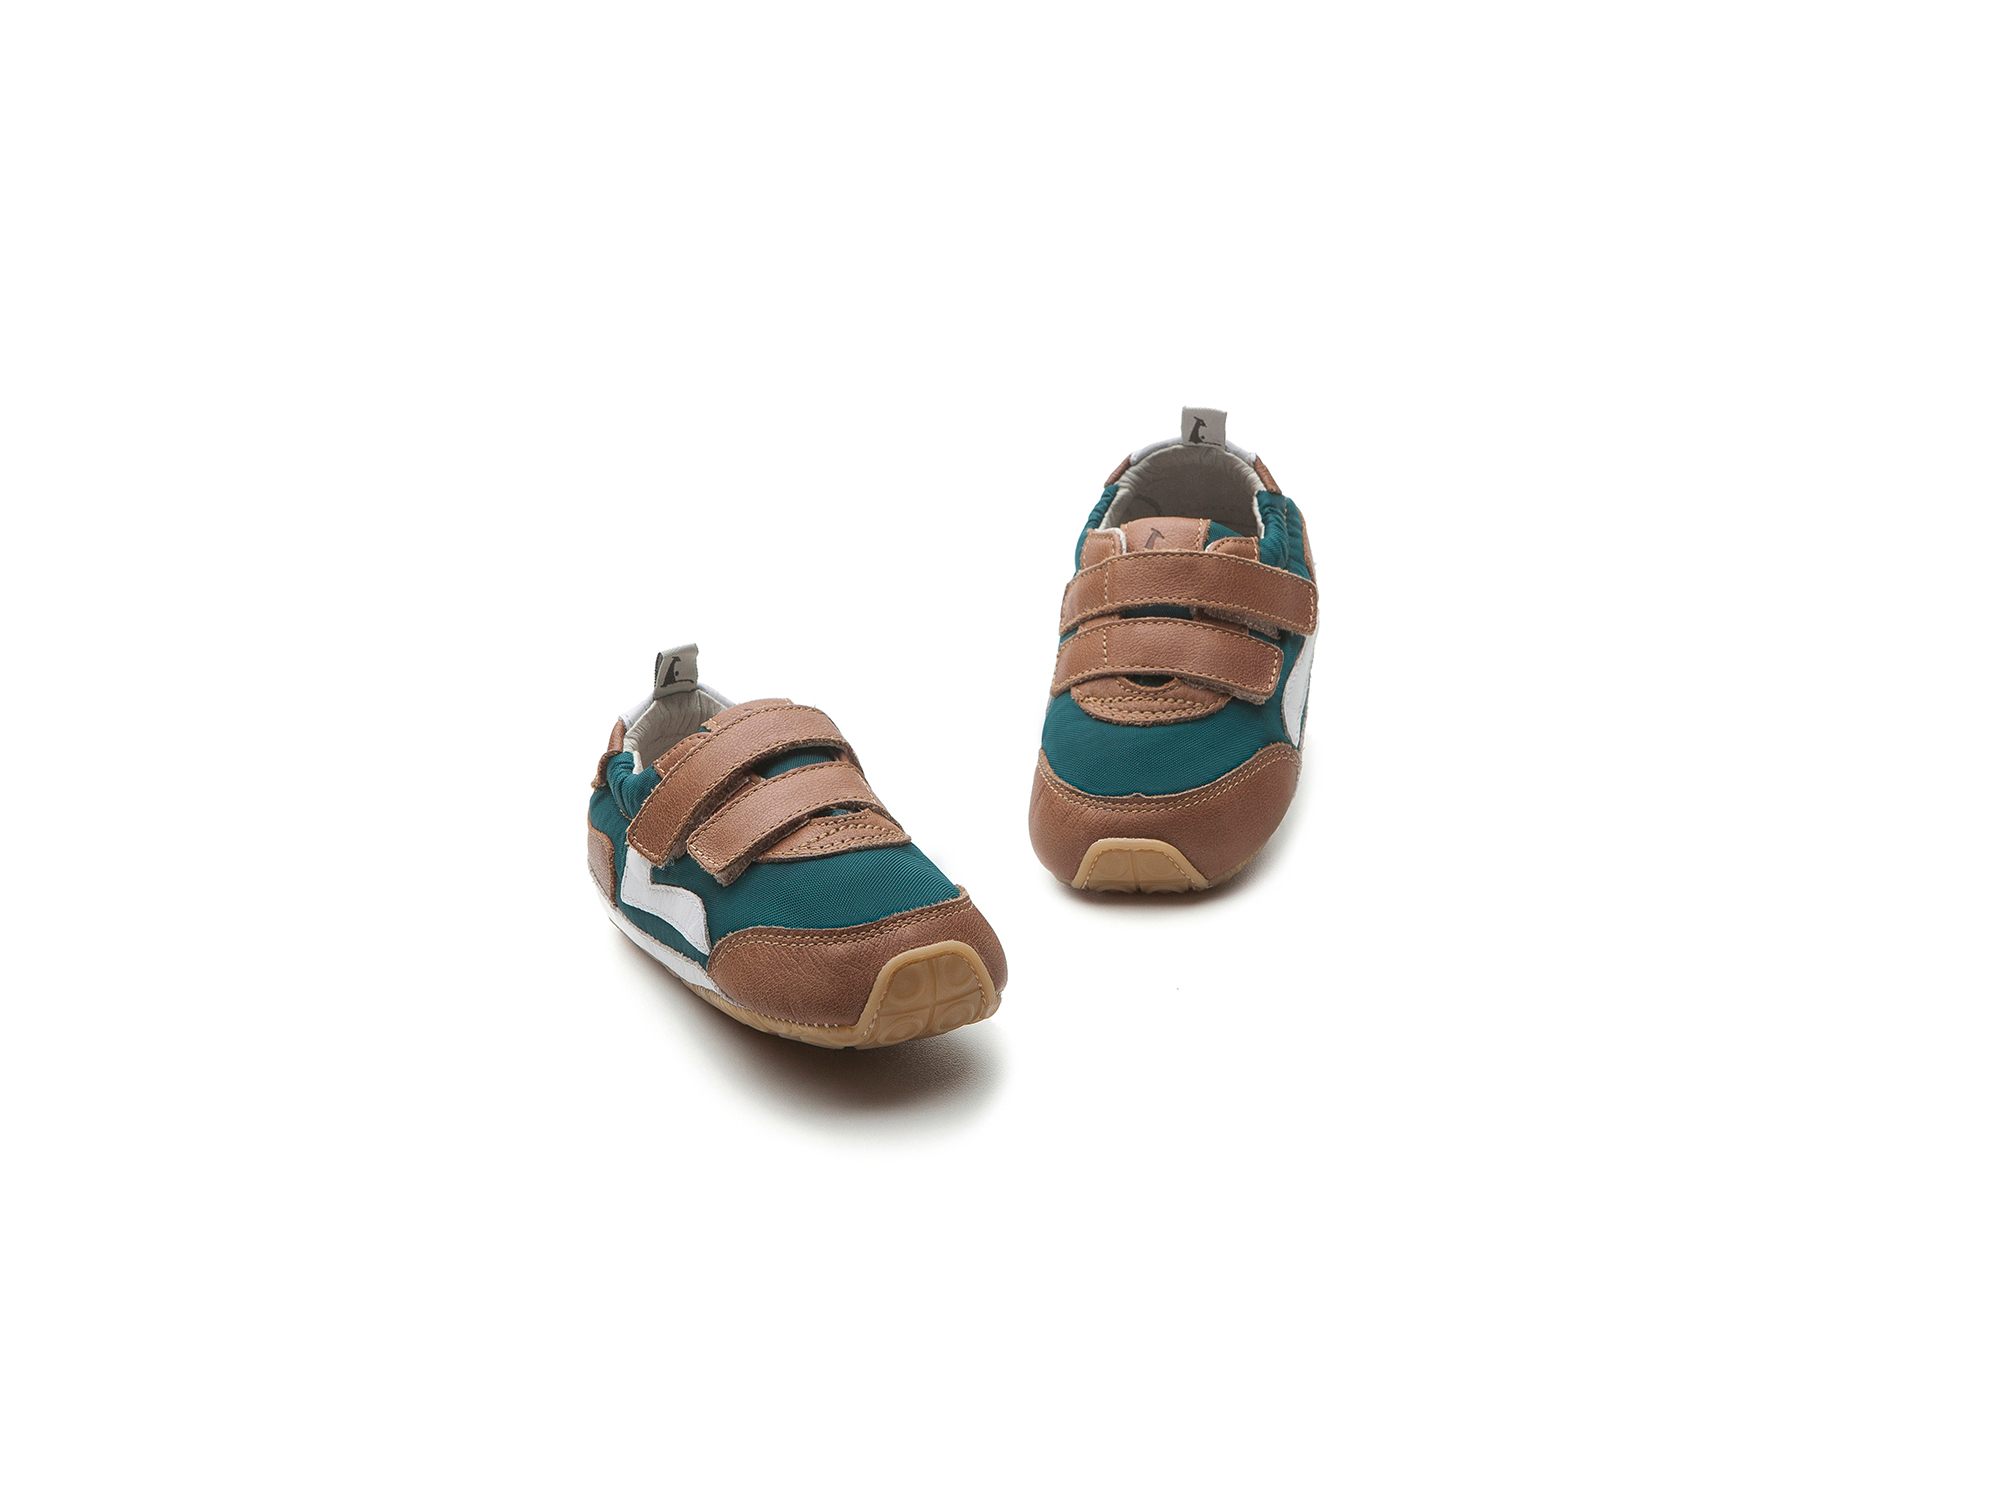 Tênis Jumpy Palm Nylon/ Whisky Baby 0 à 2 anos - 1